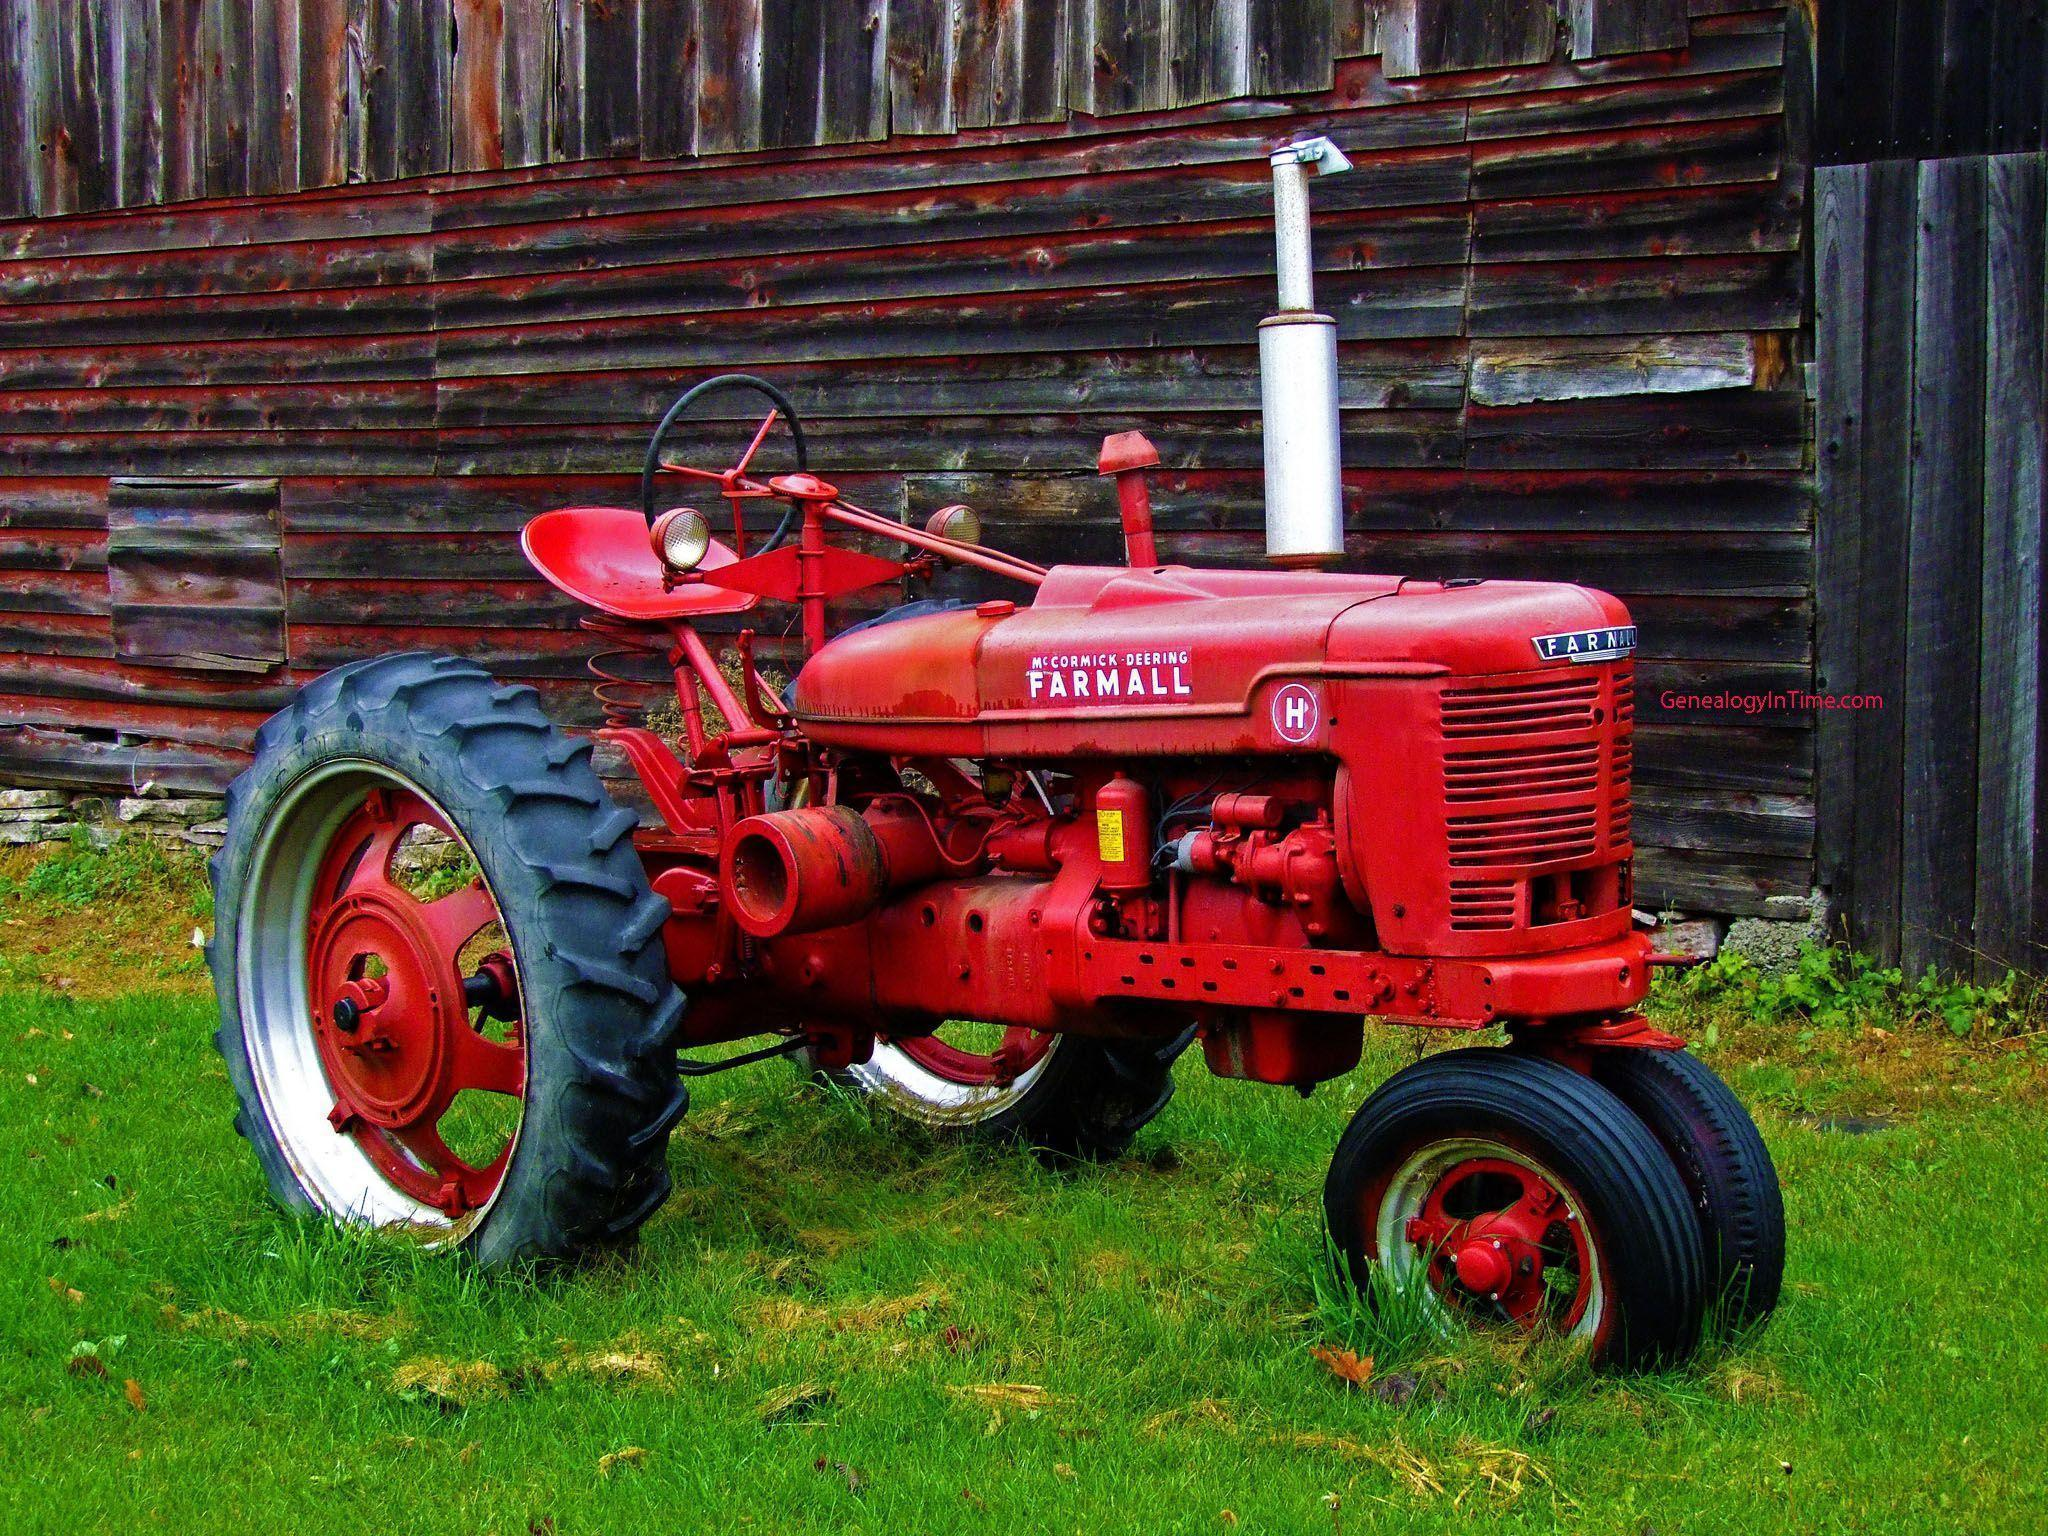 3 Farmall Tractor HD Wallpapers | Backgrounds - Wallpaper Abyss